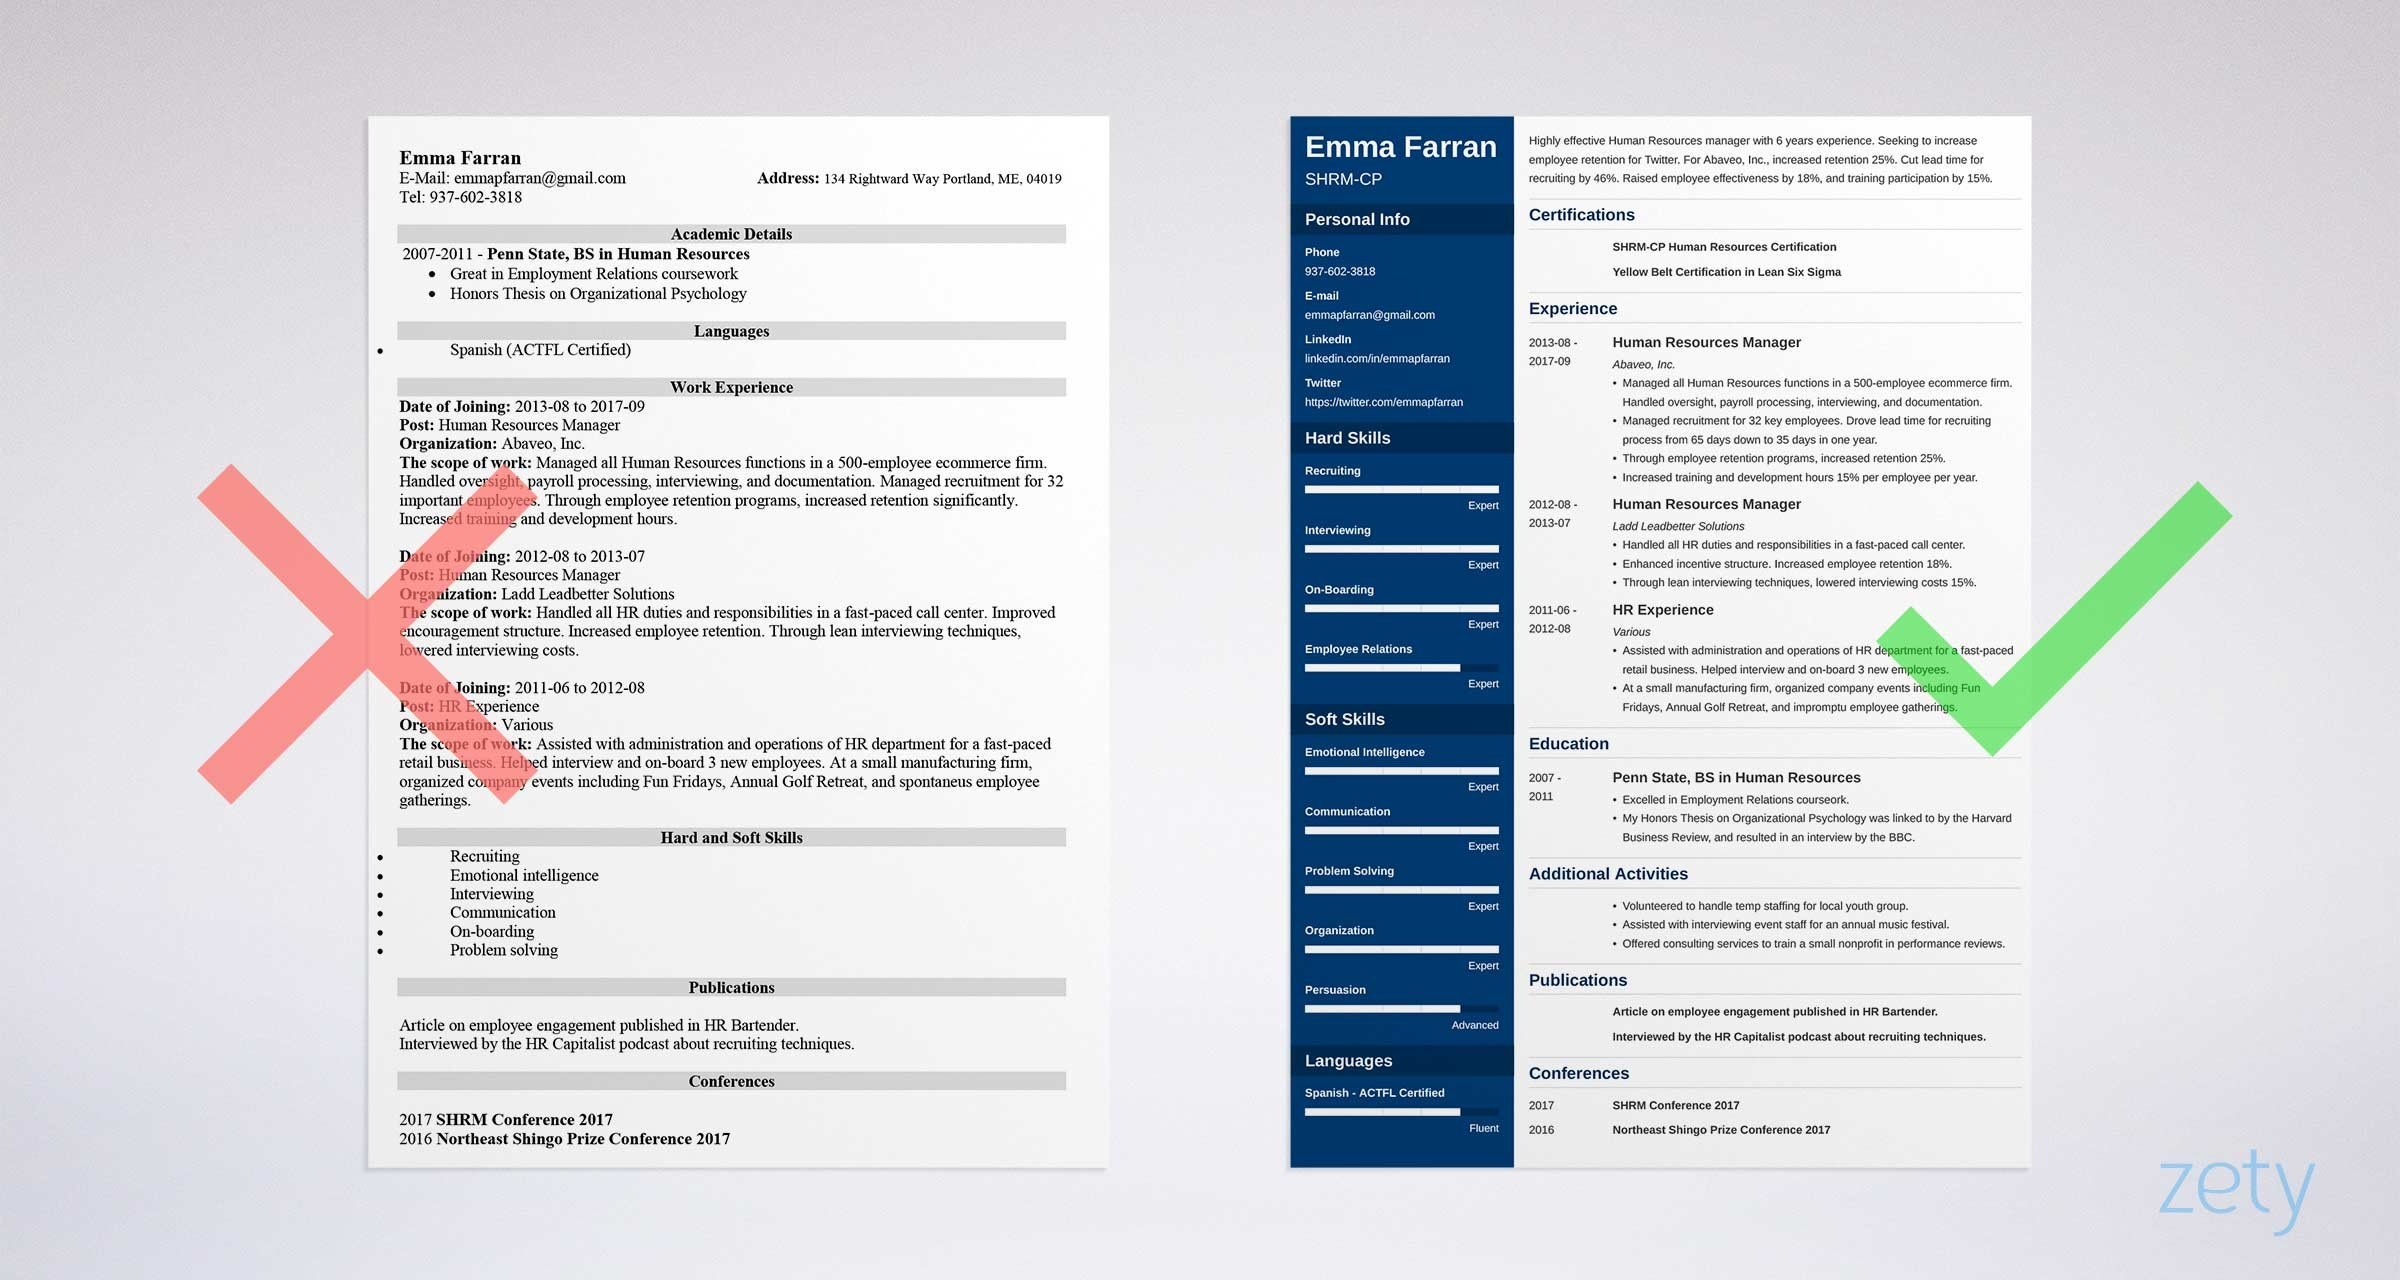 Human resources generalist resume sample. Human Resources Hr Resume Examples Guide 25 Tips